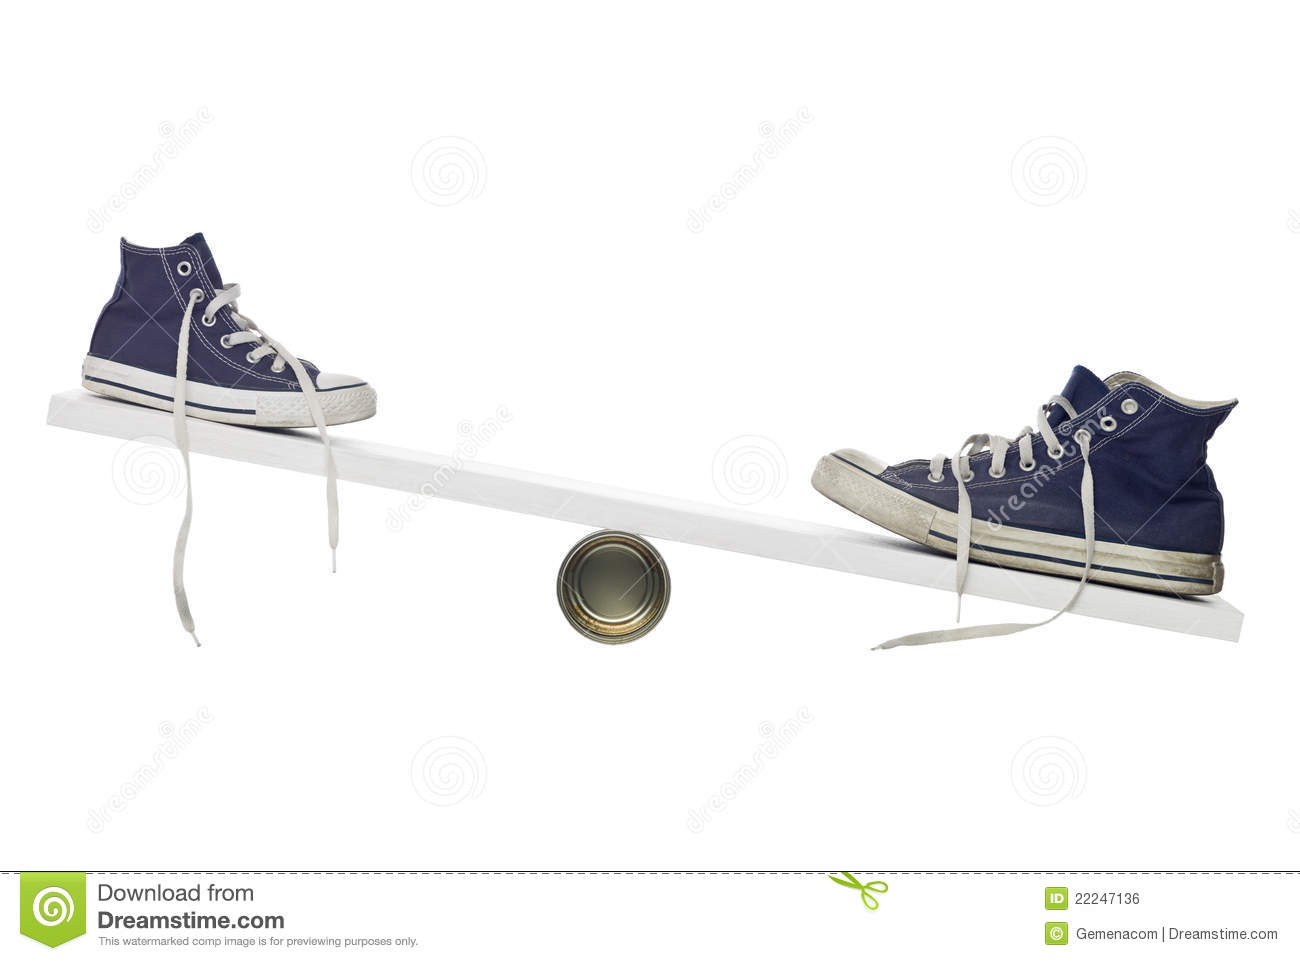 Difference Between Men's Shoe Size and Women's Shoe Size